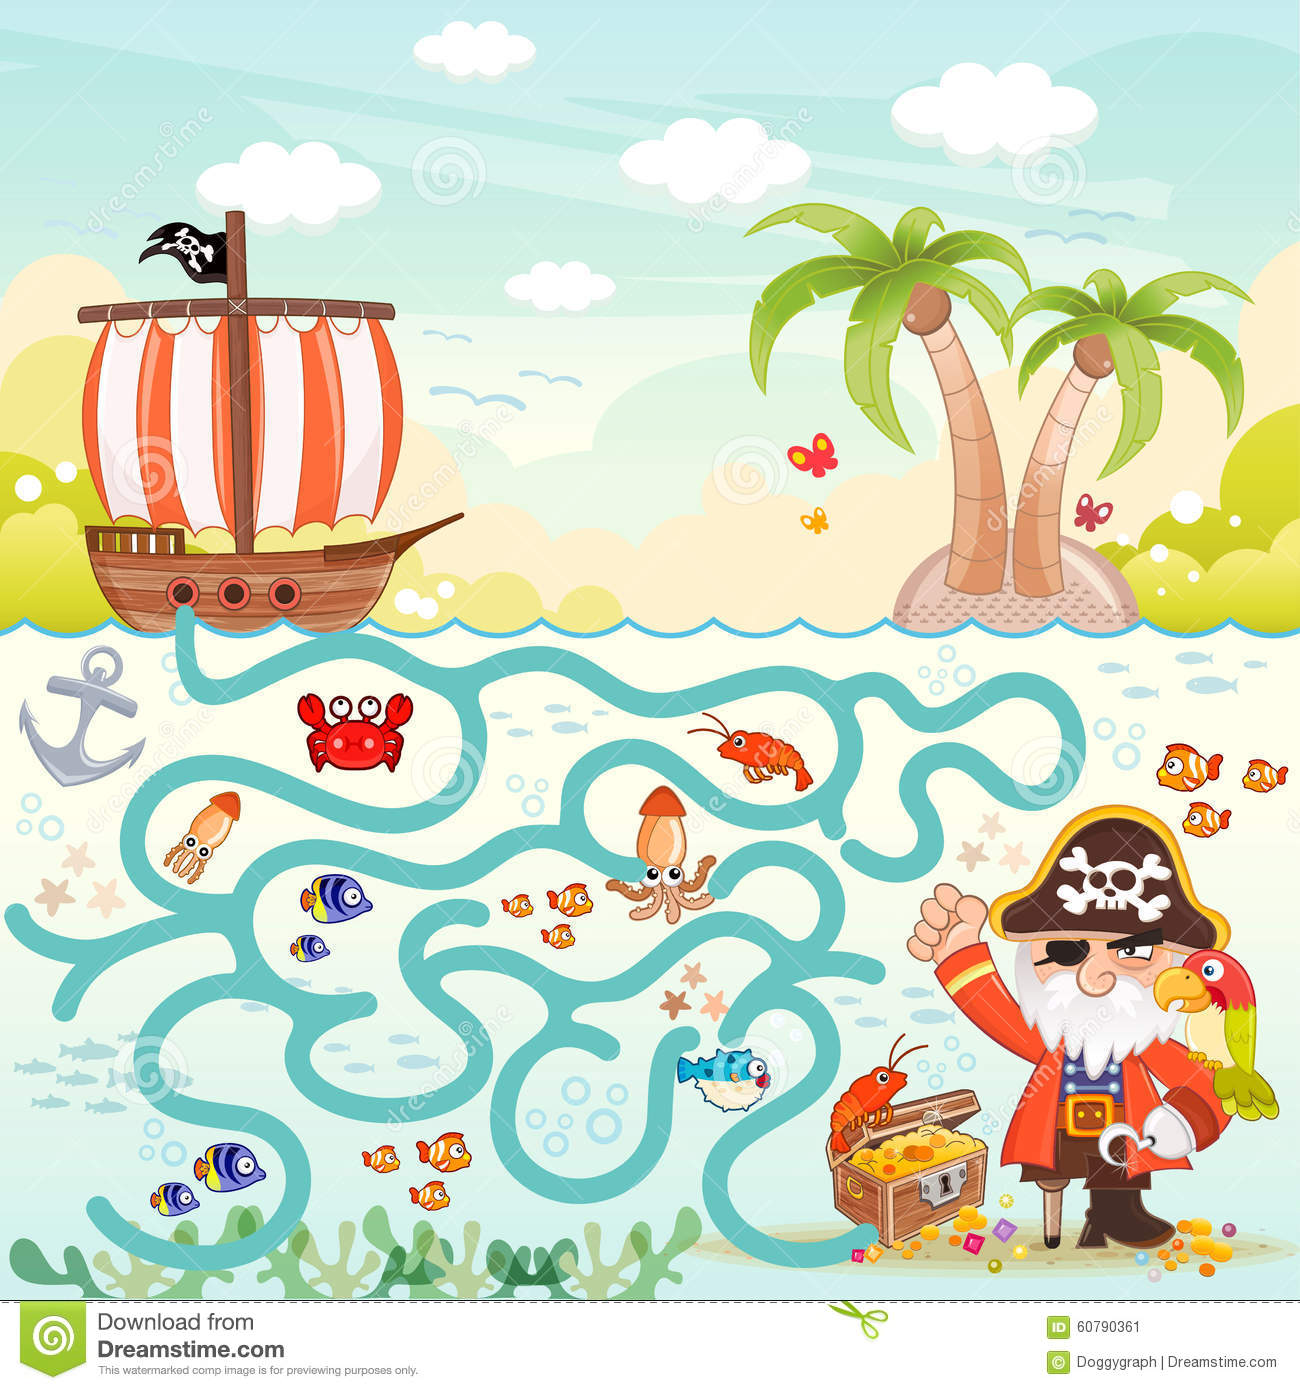 jake and the neverland pirates background island